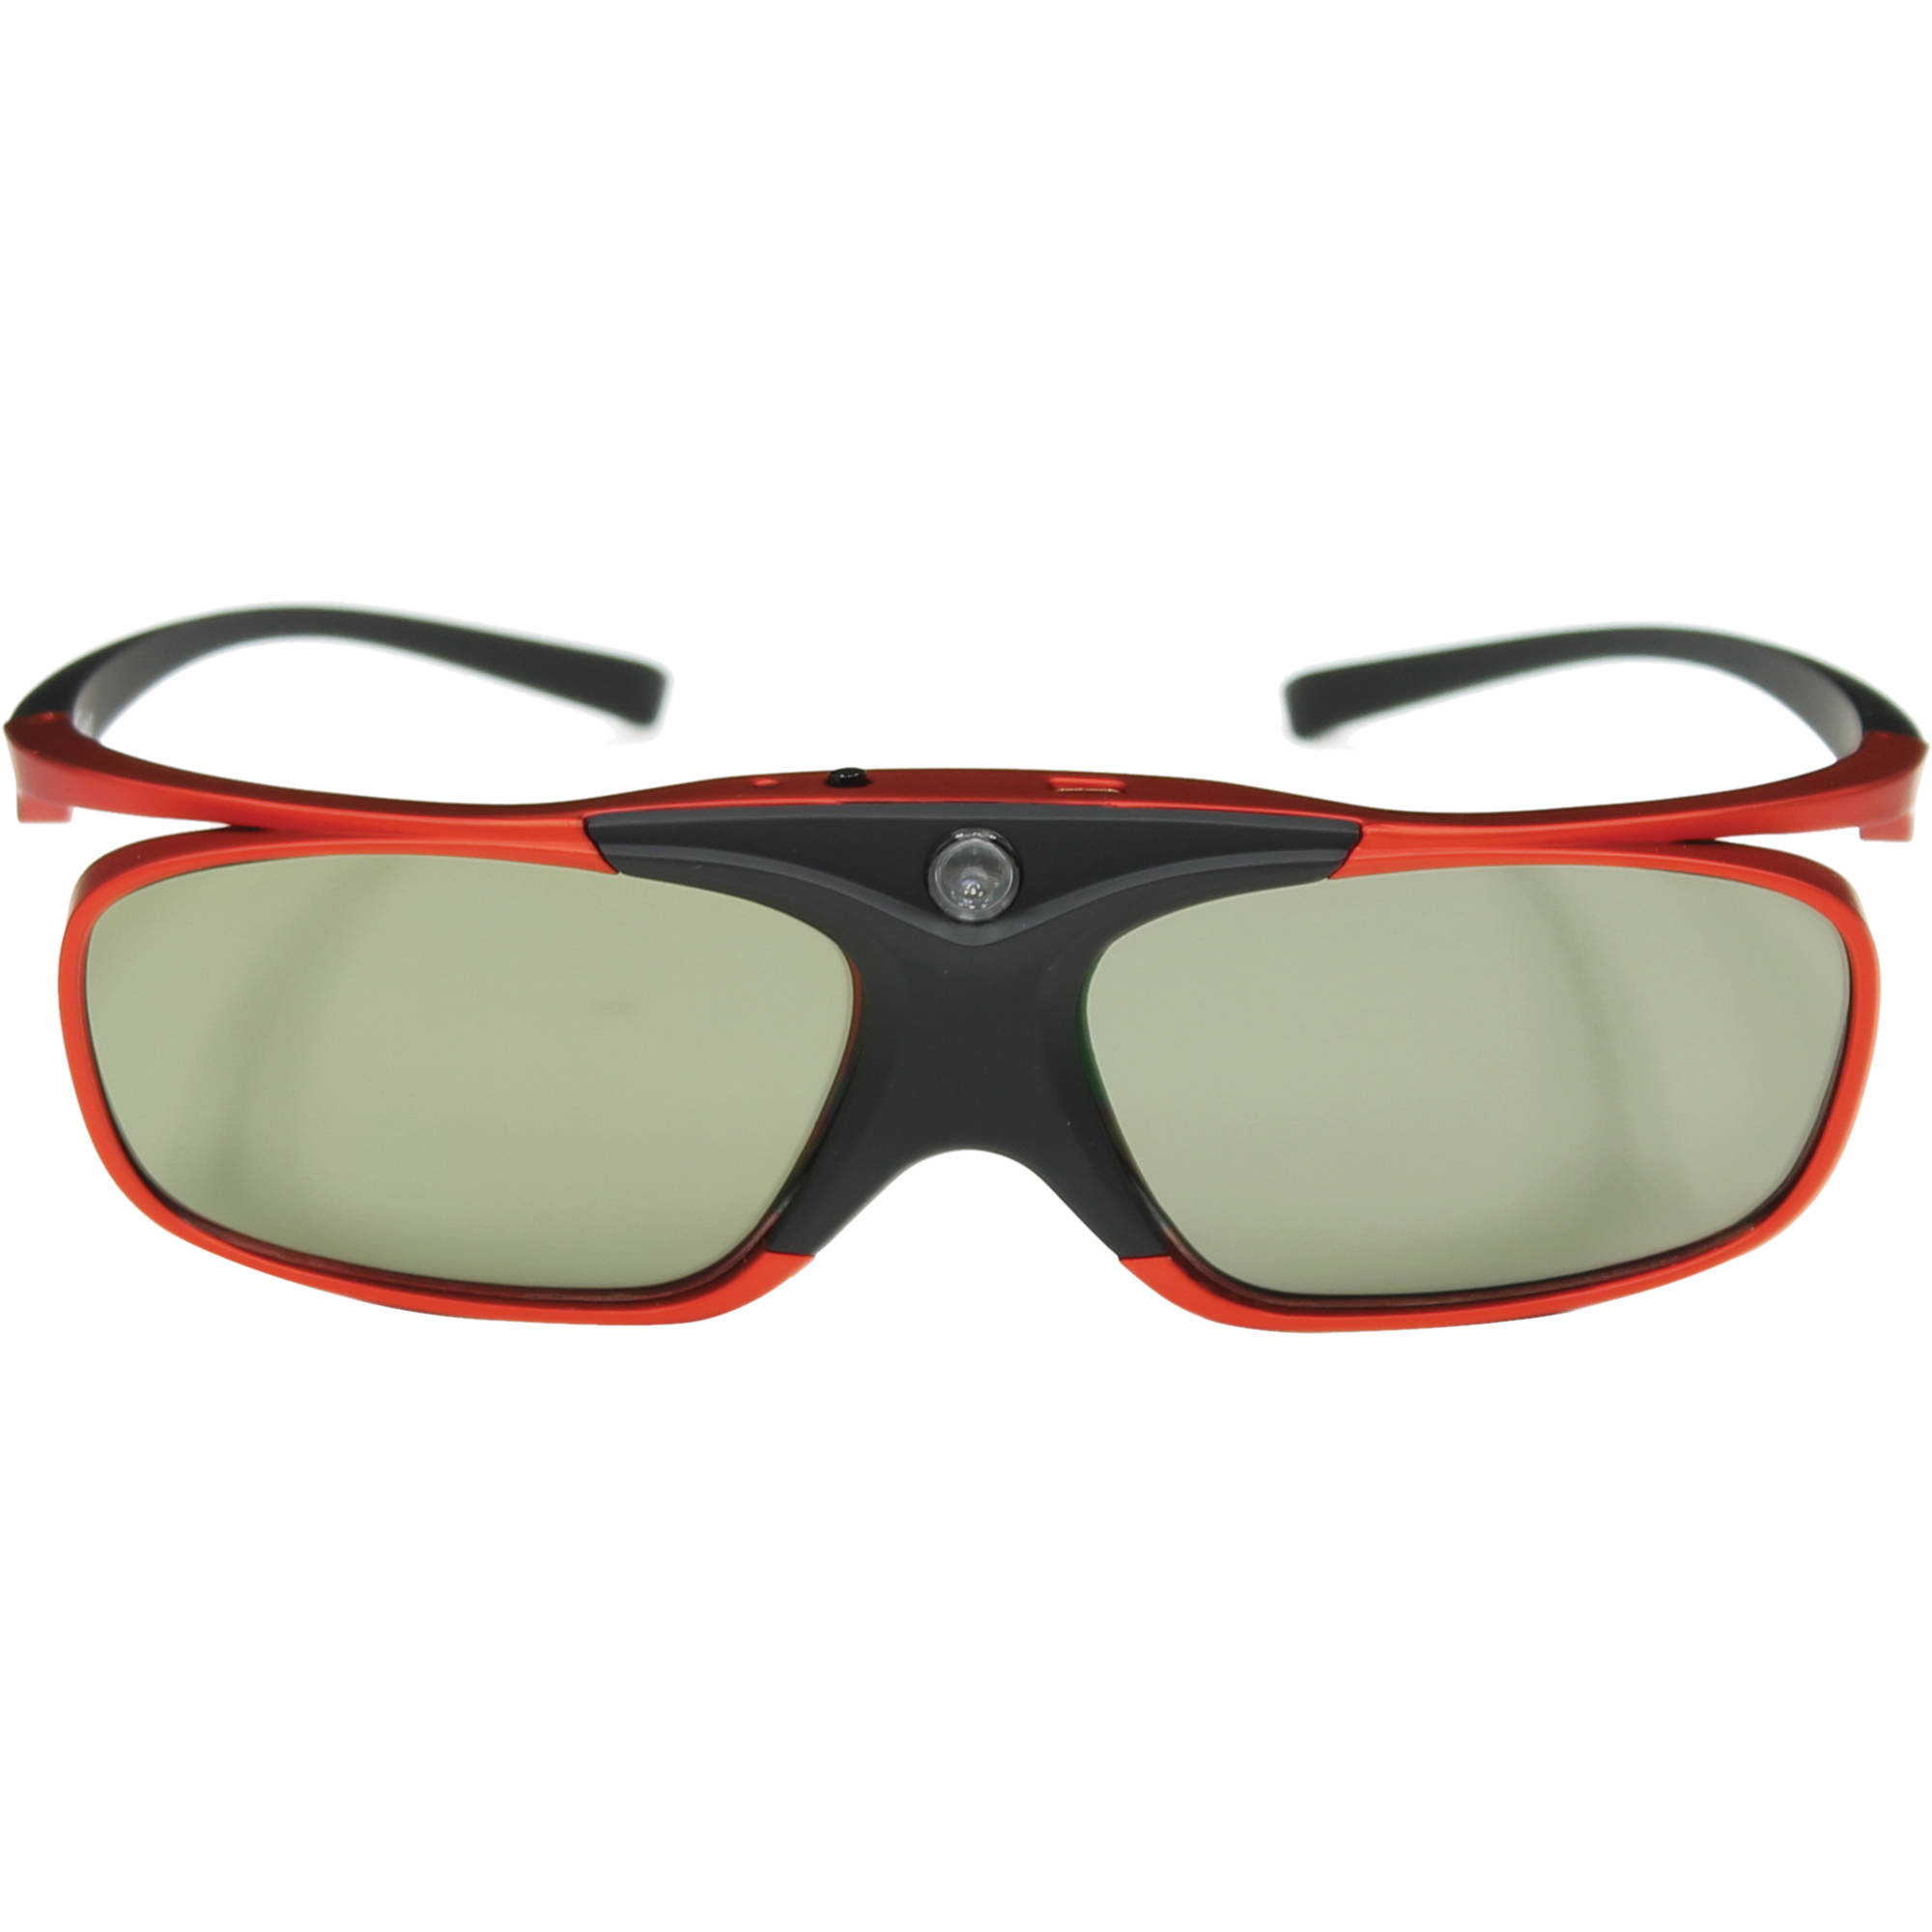 Optoma, Optoma, ZD302, DLP-Linked, 3D, Glasses,